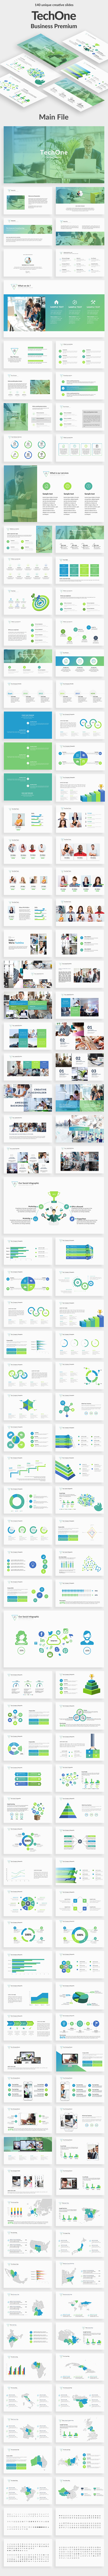 TechOne Business Keynote Template - Business Keynote Templates